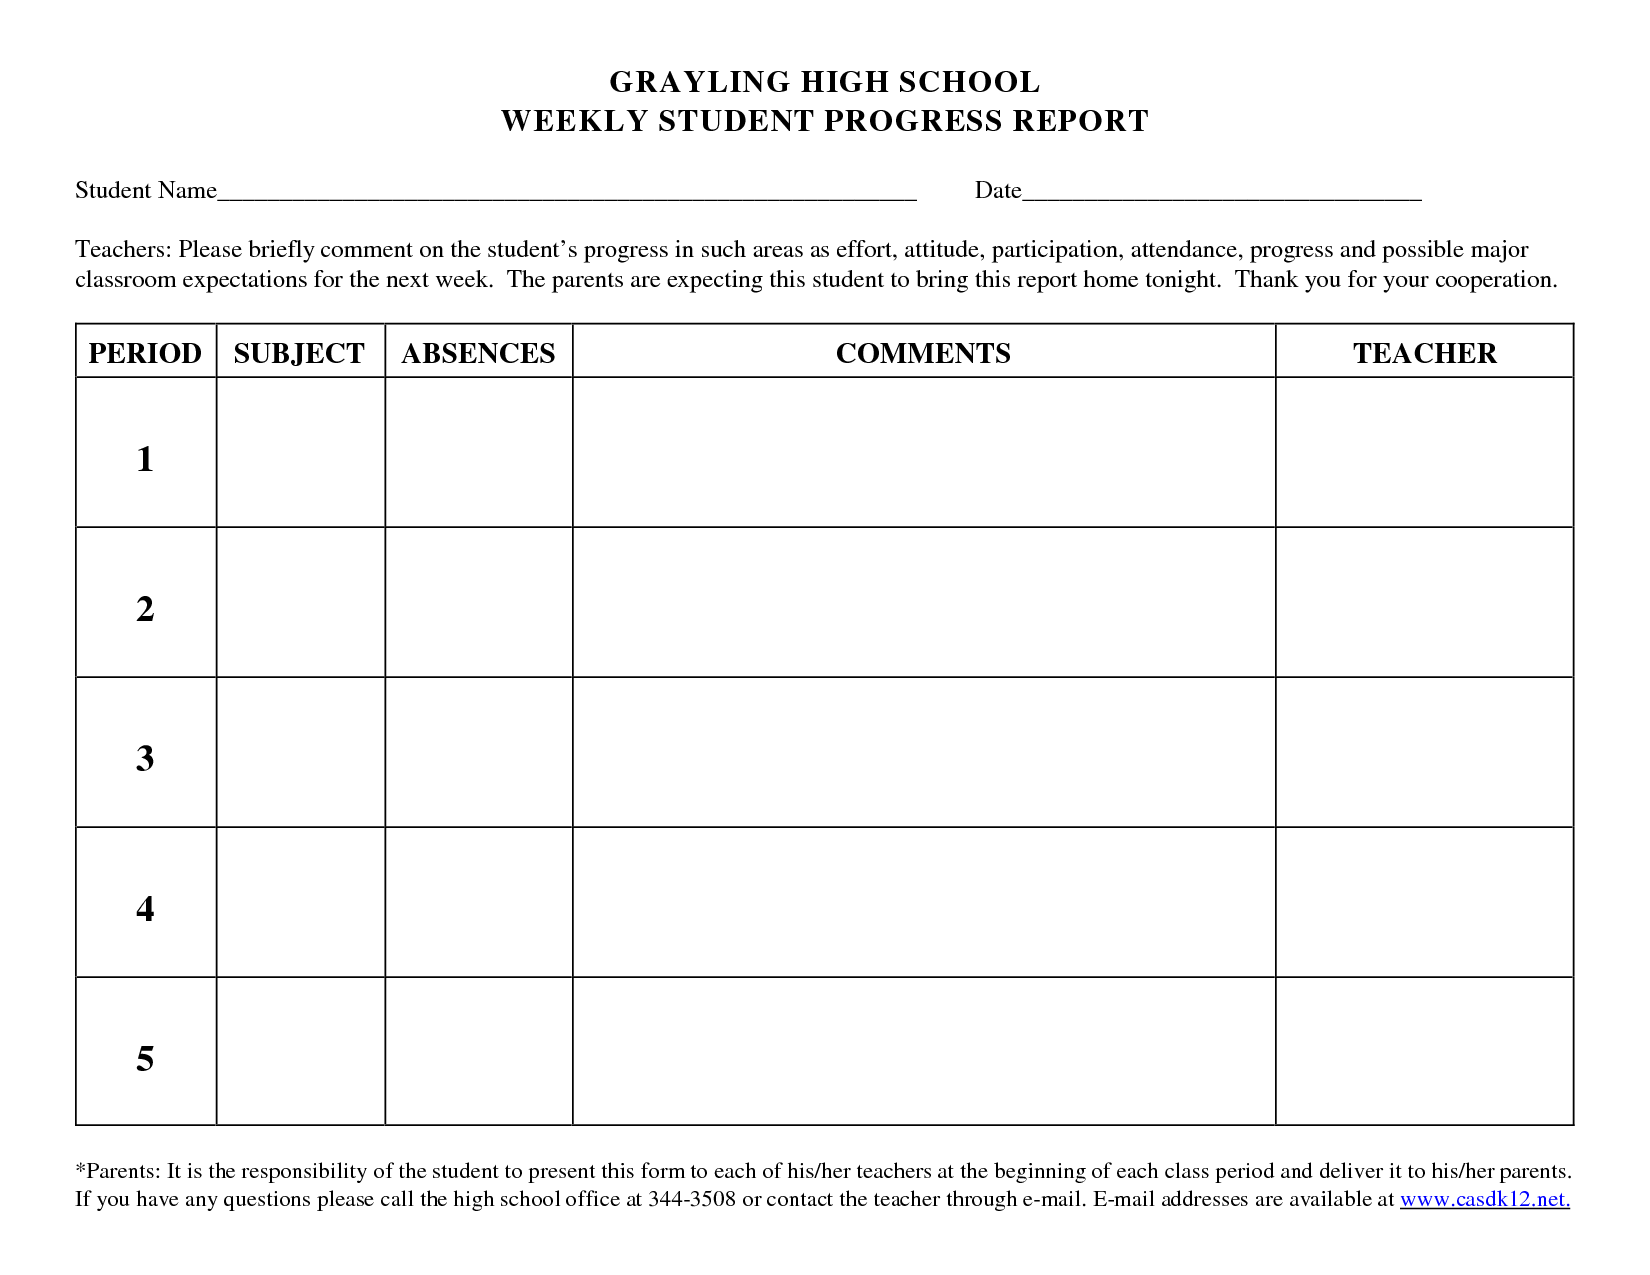 Weekly Activity Report Template. Progress Report Template For High School  Students Google Search